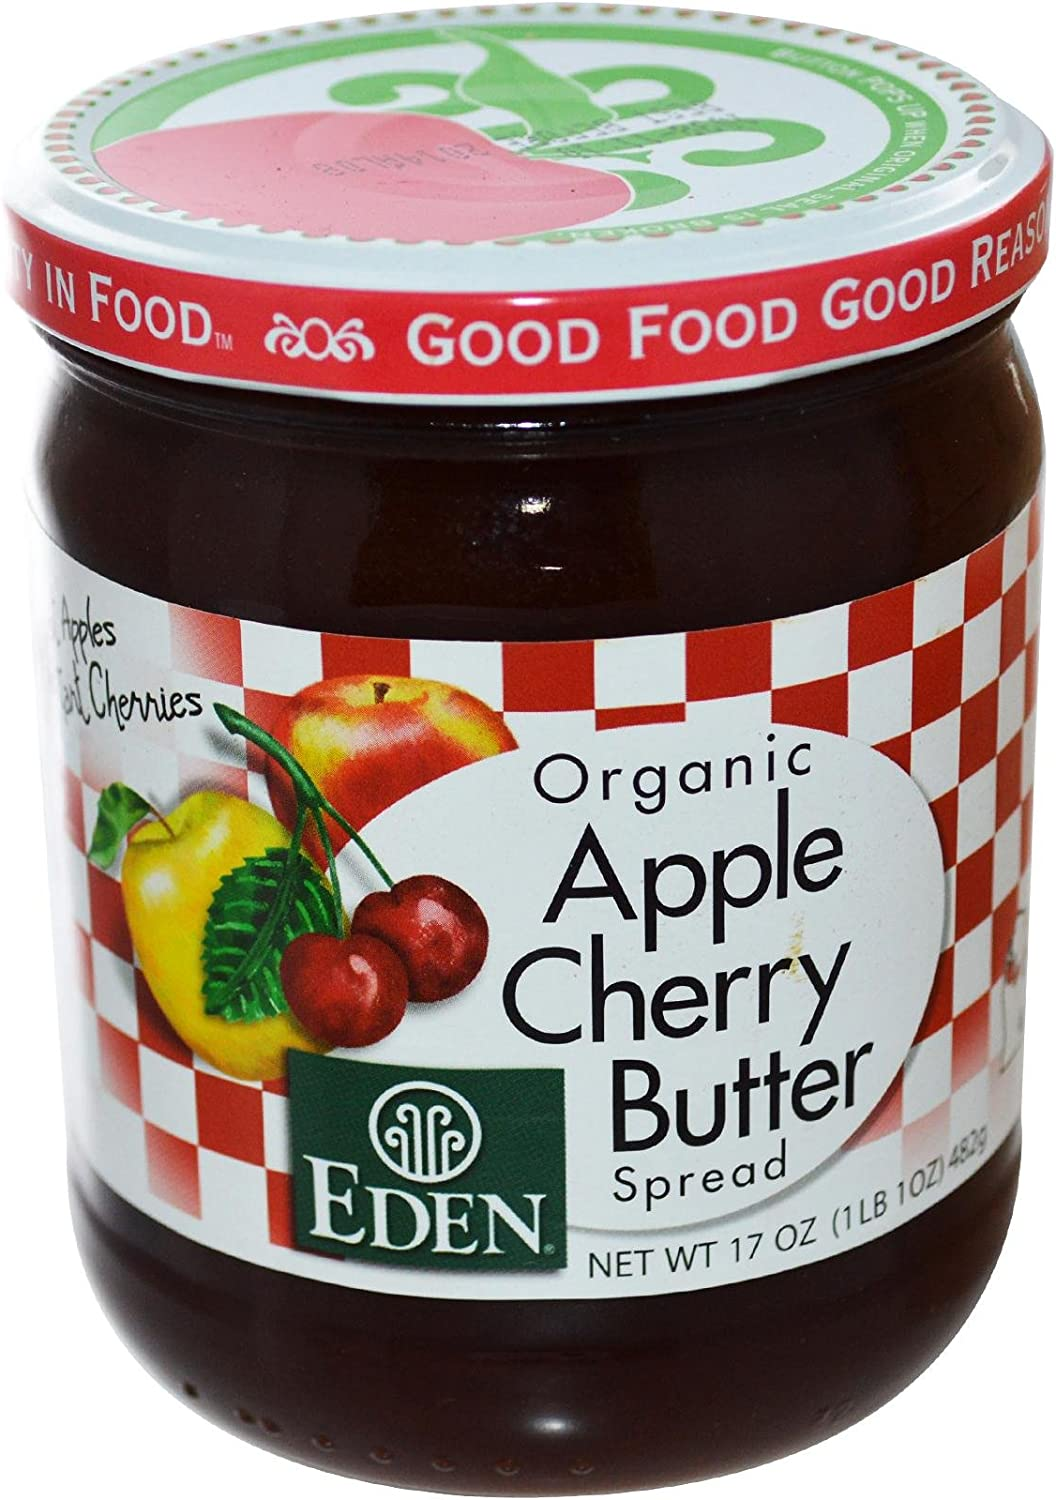 Eden Foods Organic Apple Cherry Butter Spread - 17 oz